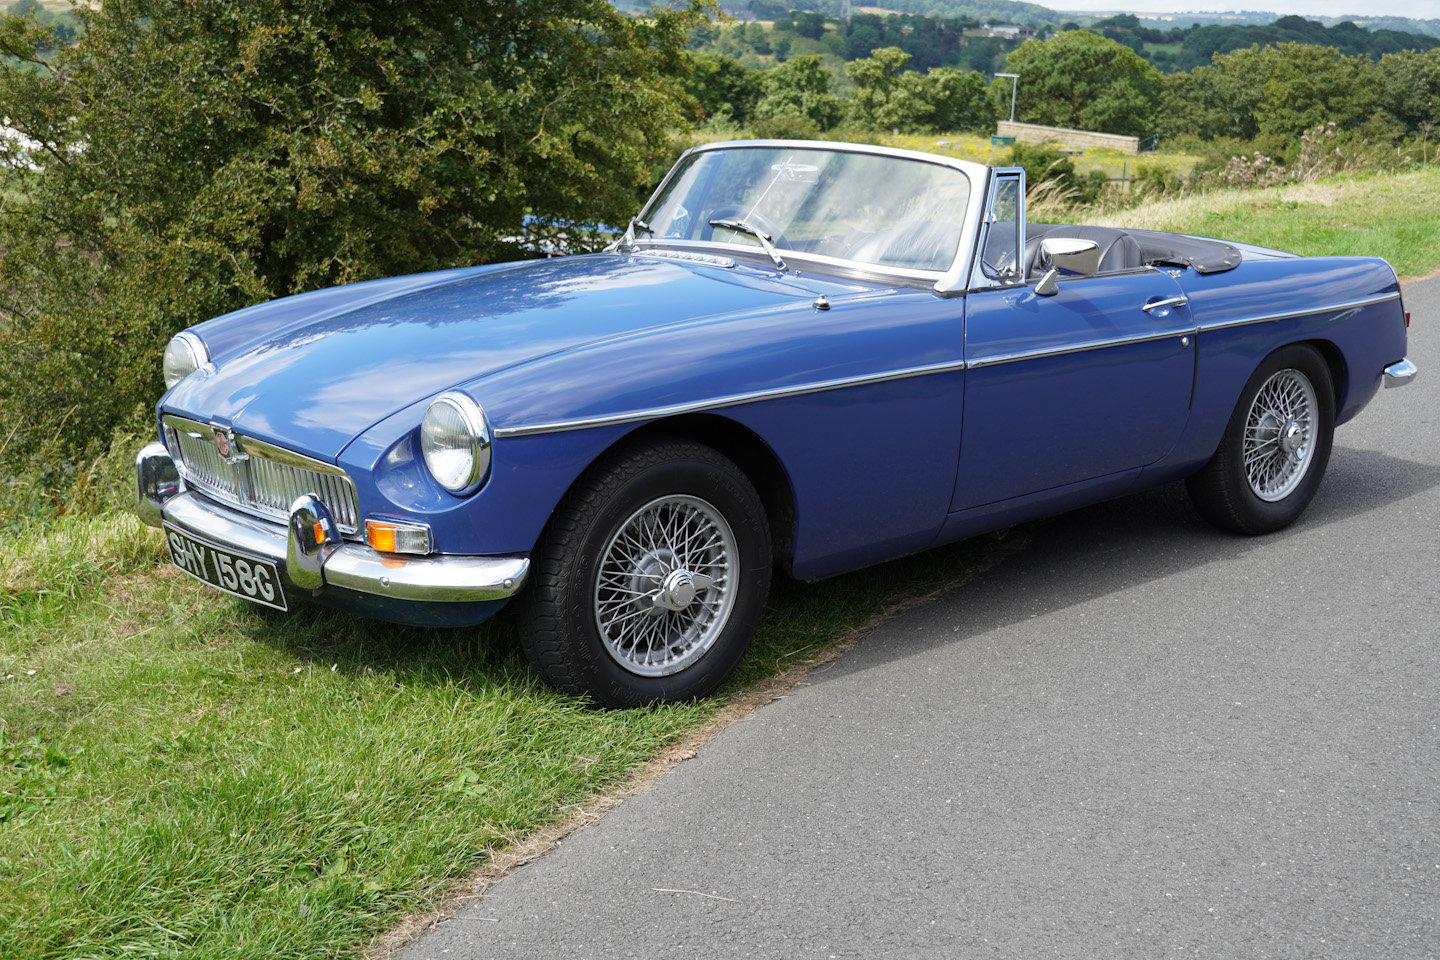 1968 MGB Roadster - Original UK Numbers Matching Car For Sale (picture 9 of 10)